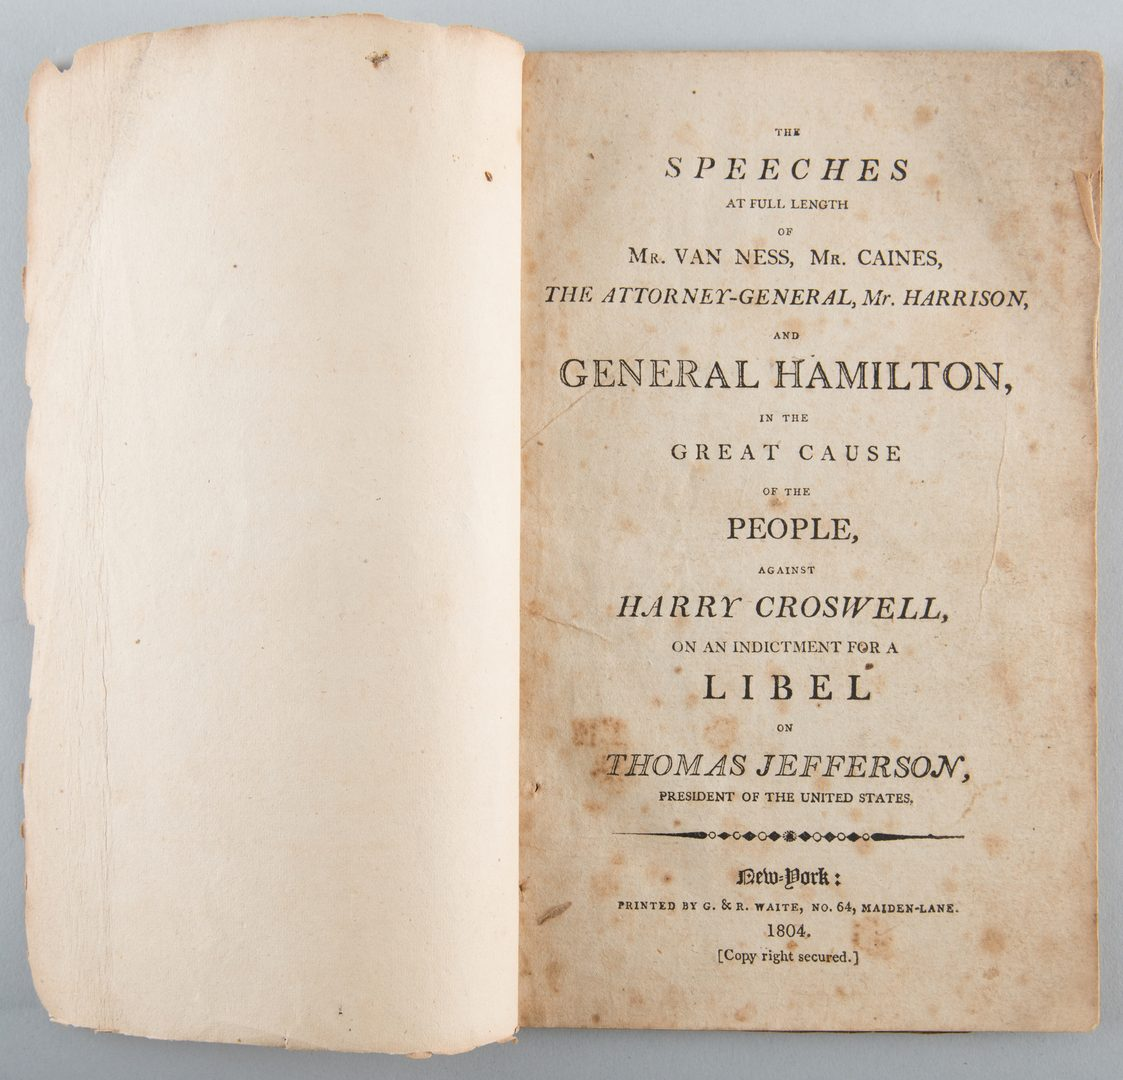 Lot 560: Pamphlet from Jefferson Libel Case, 1804